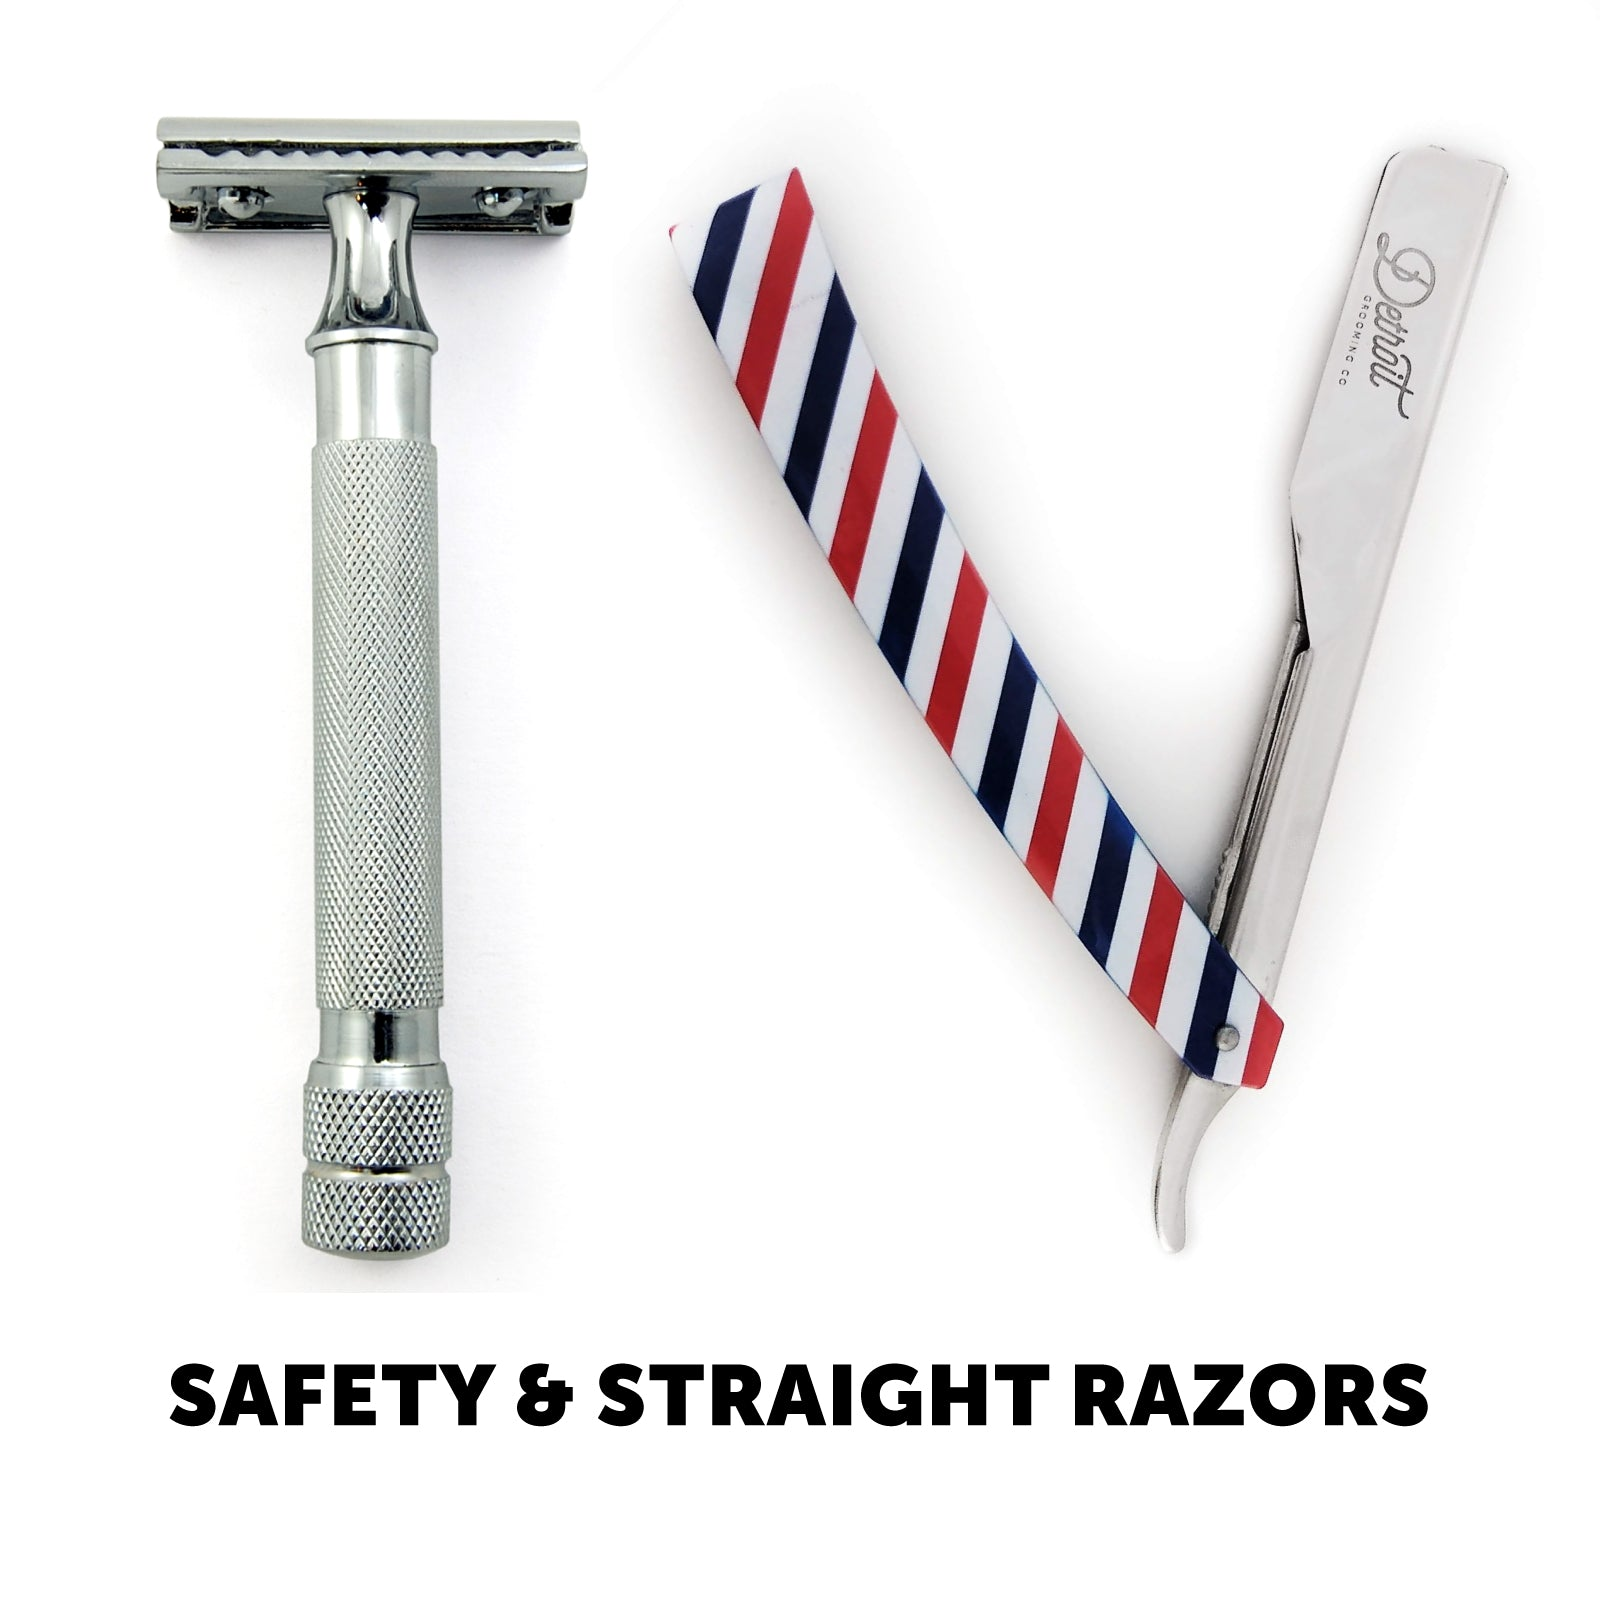 Safety Razors and Straight Razors Collection